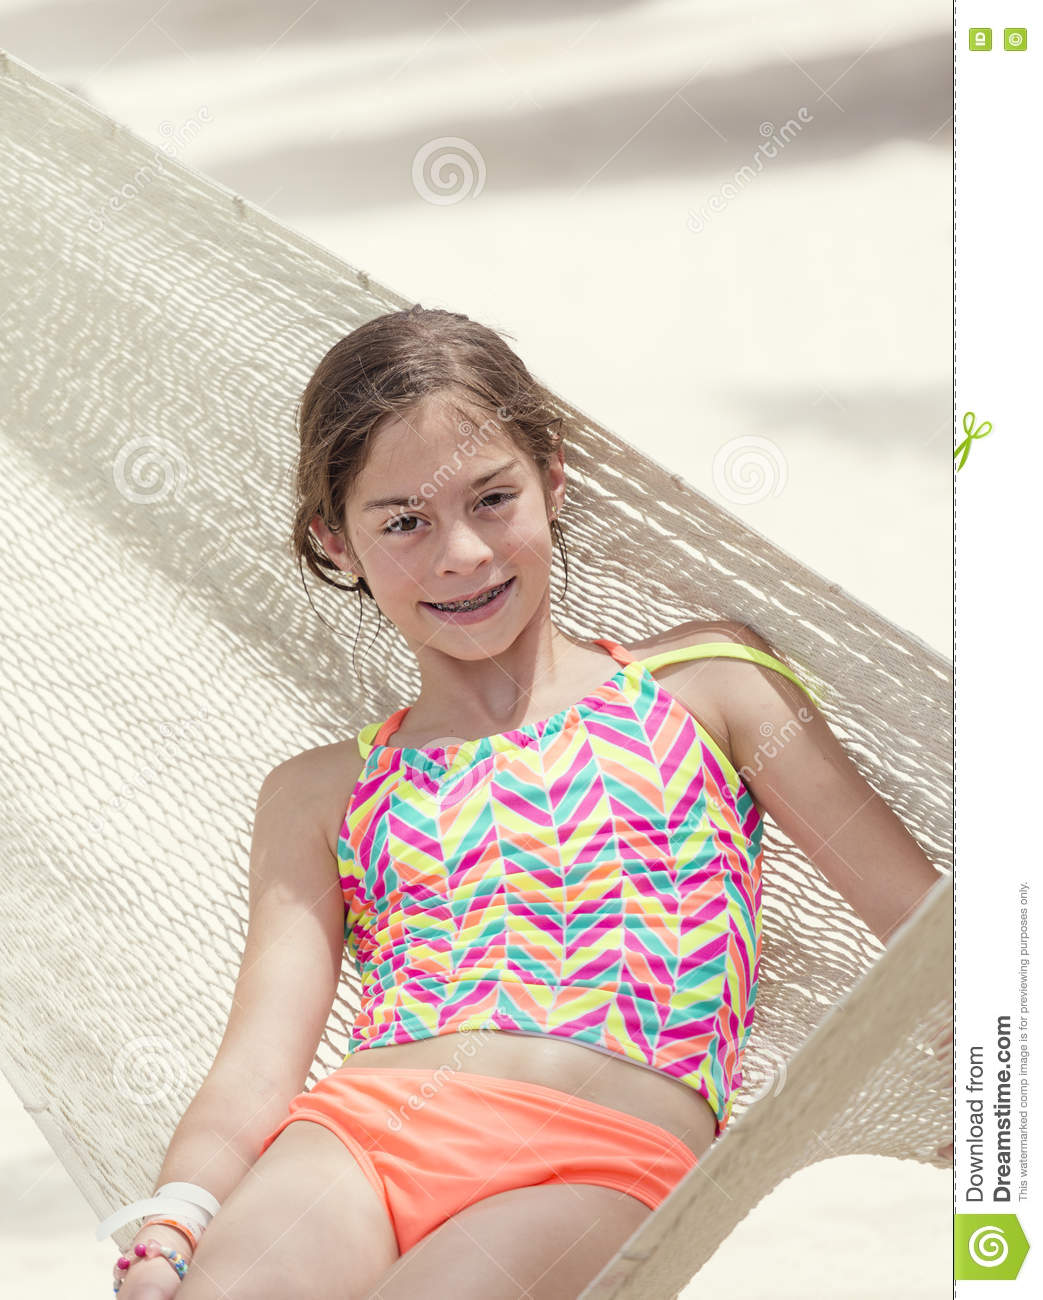 Smiling Little Girl Relaxing In A Hammock On Vacation